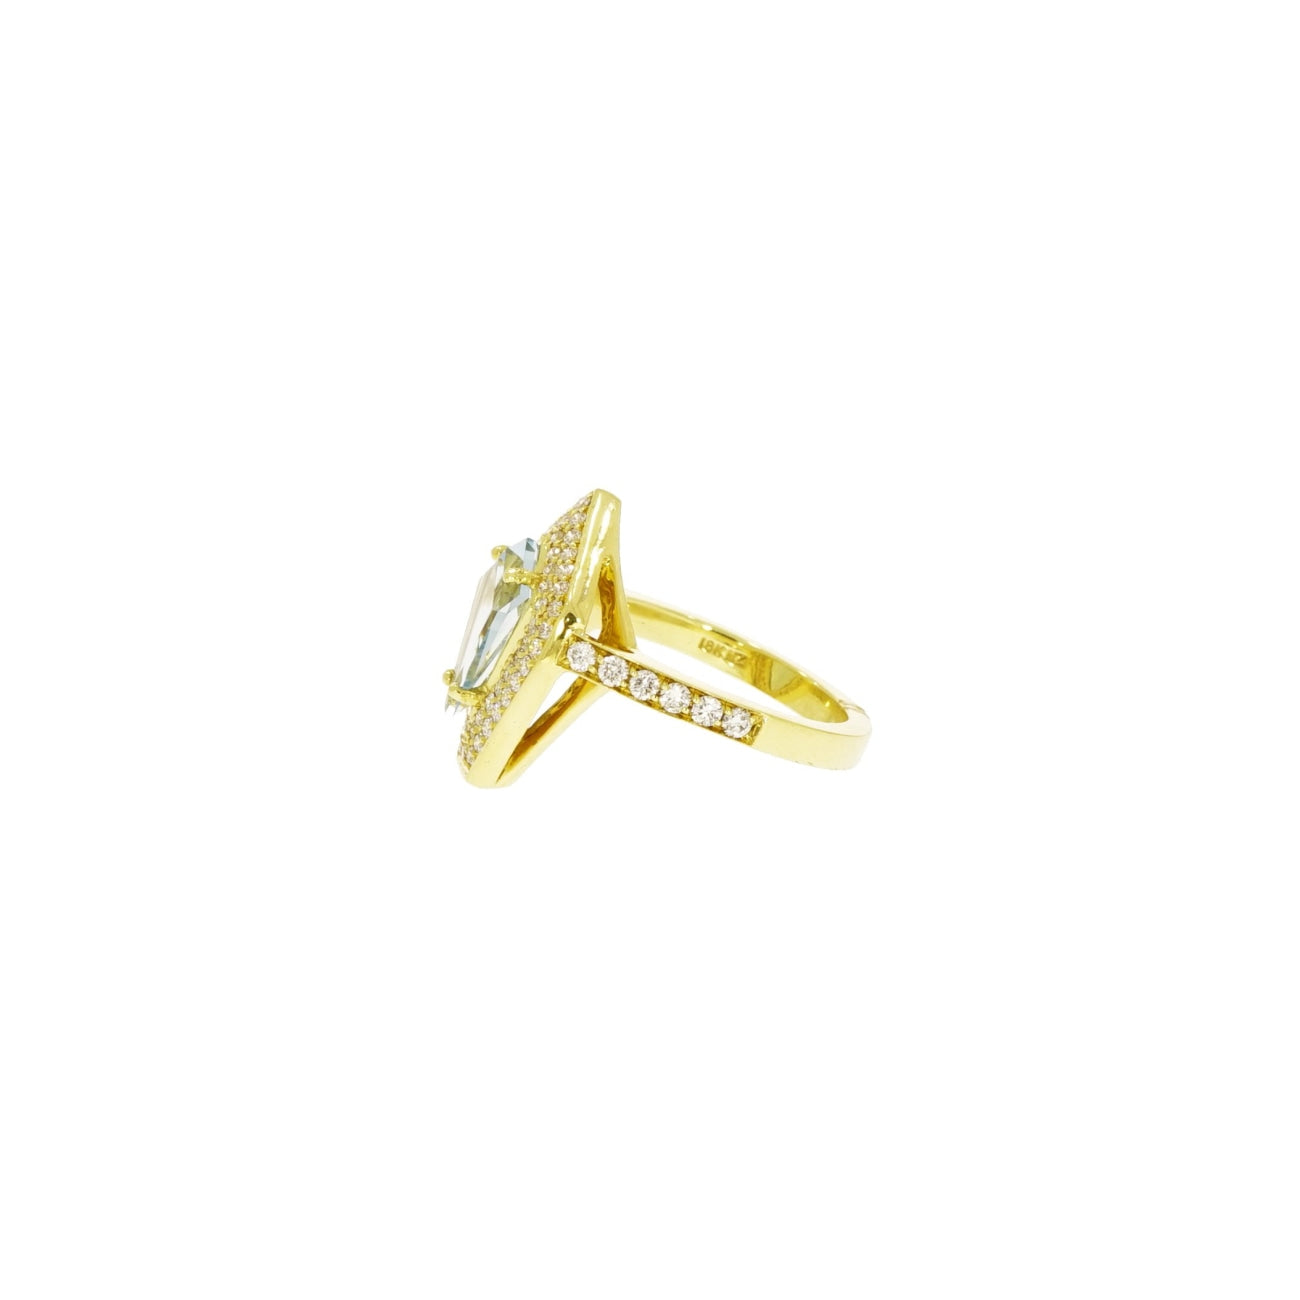 Lauren K Jewelry - Kite shaped Aquamarine & Yellow Gold Ring | Manfredi Jewels